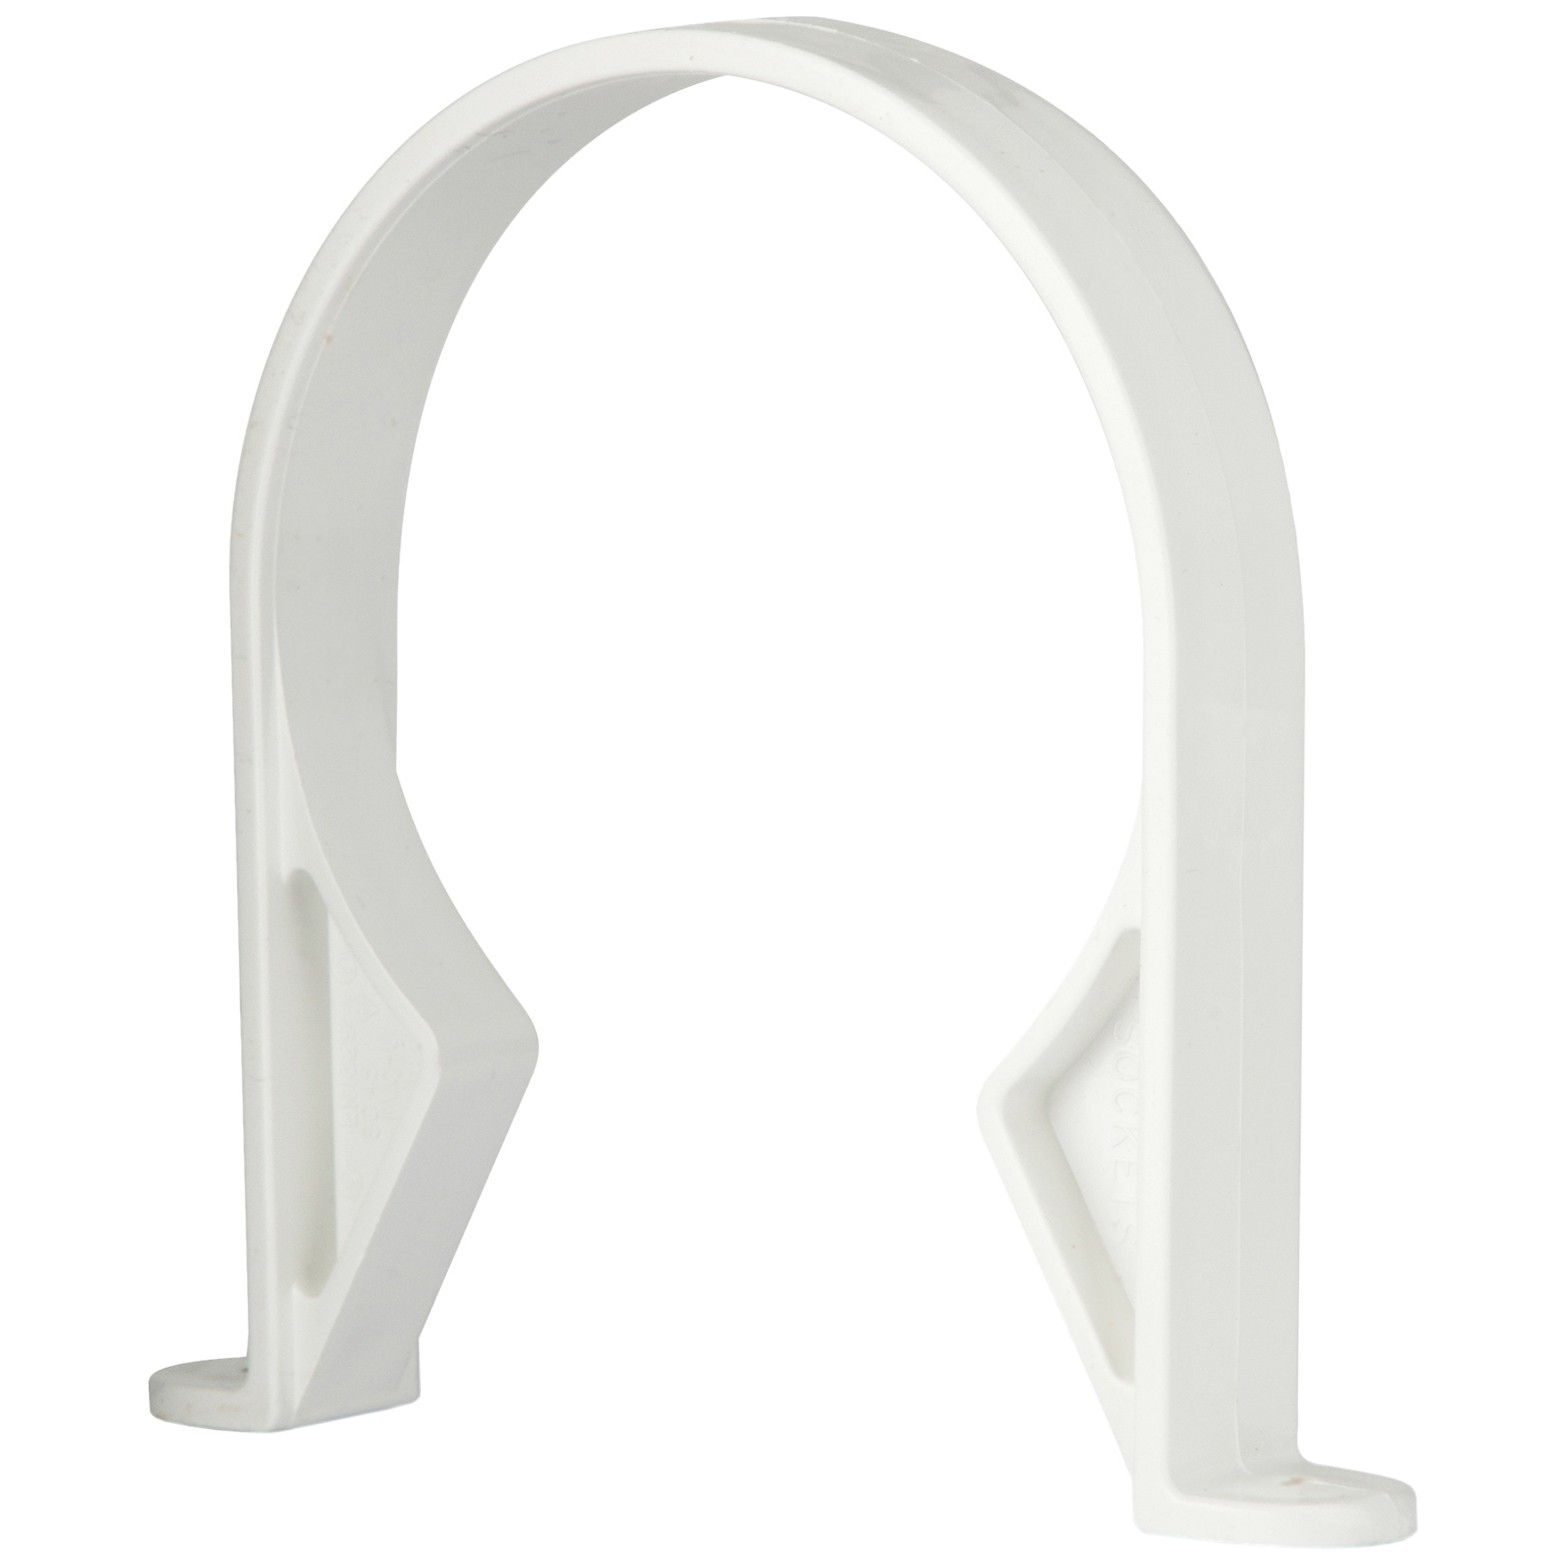 Polypipe 110mm Soil Pipe Clip - White